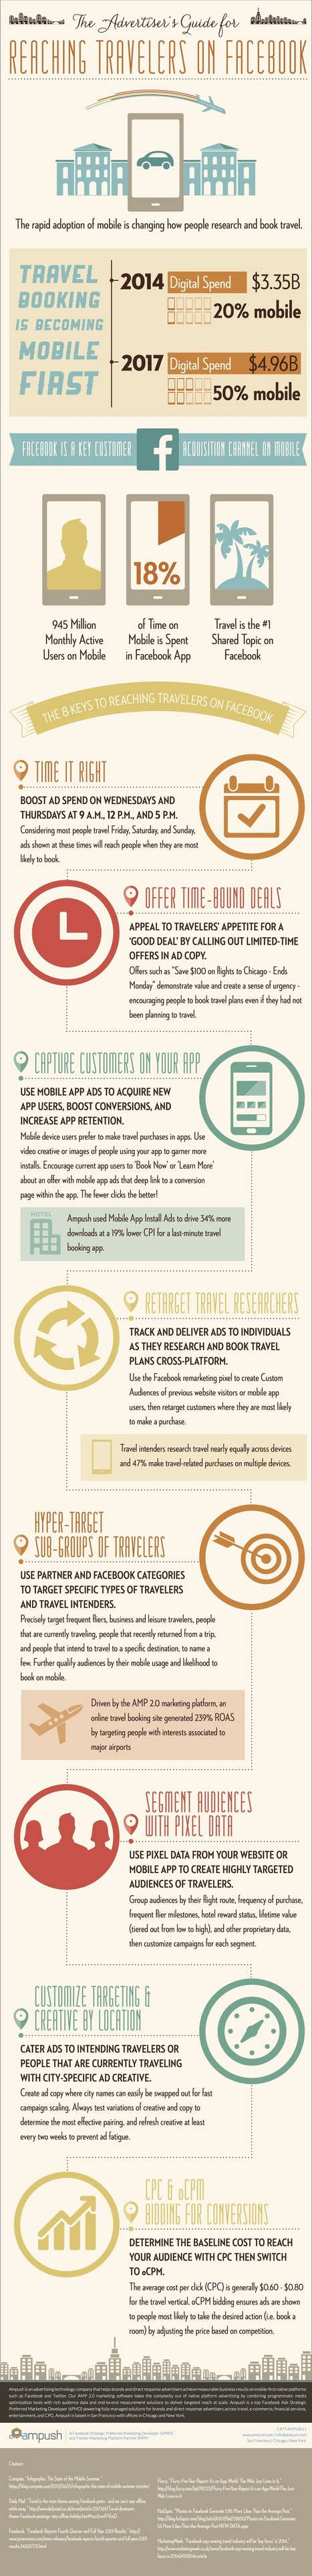 INFOGRAPHIC: Reaching Travelers on Facebook | Tourism Social Media | Scoop.it